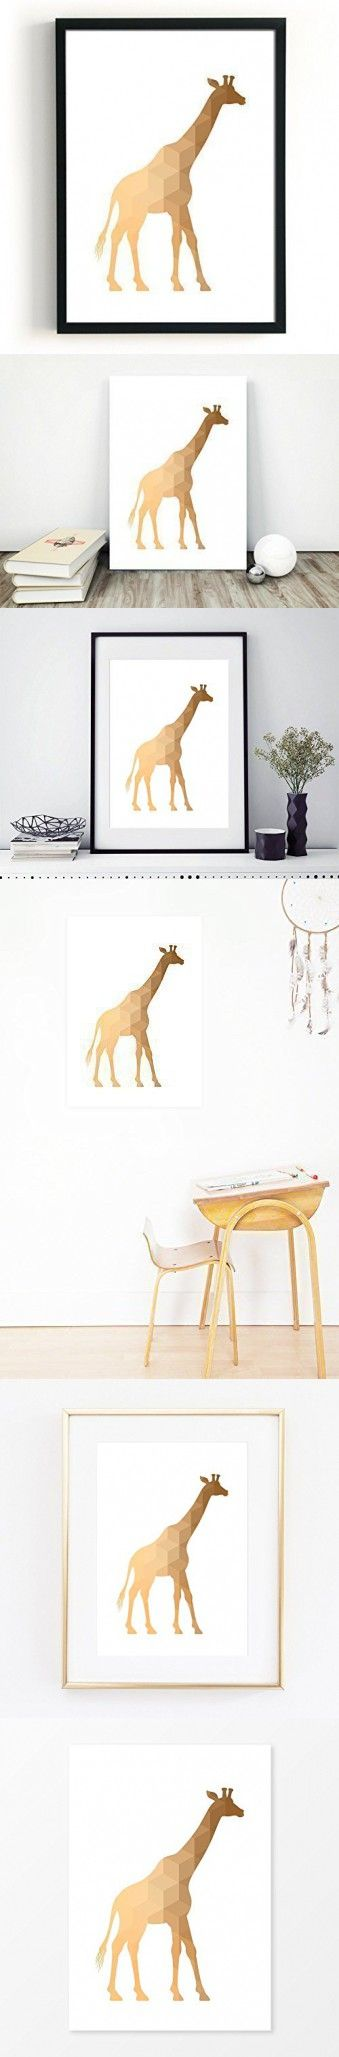 Giraffe Poster, Size 5x7, 8x10, 11x14, A5, A4 or A3, Great Geometric Baby Nursery Decor